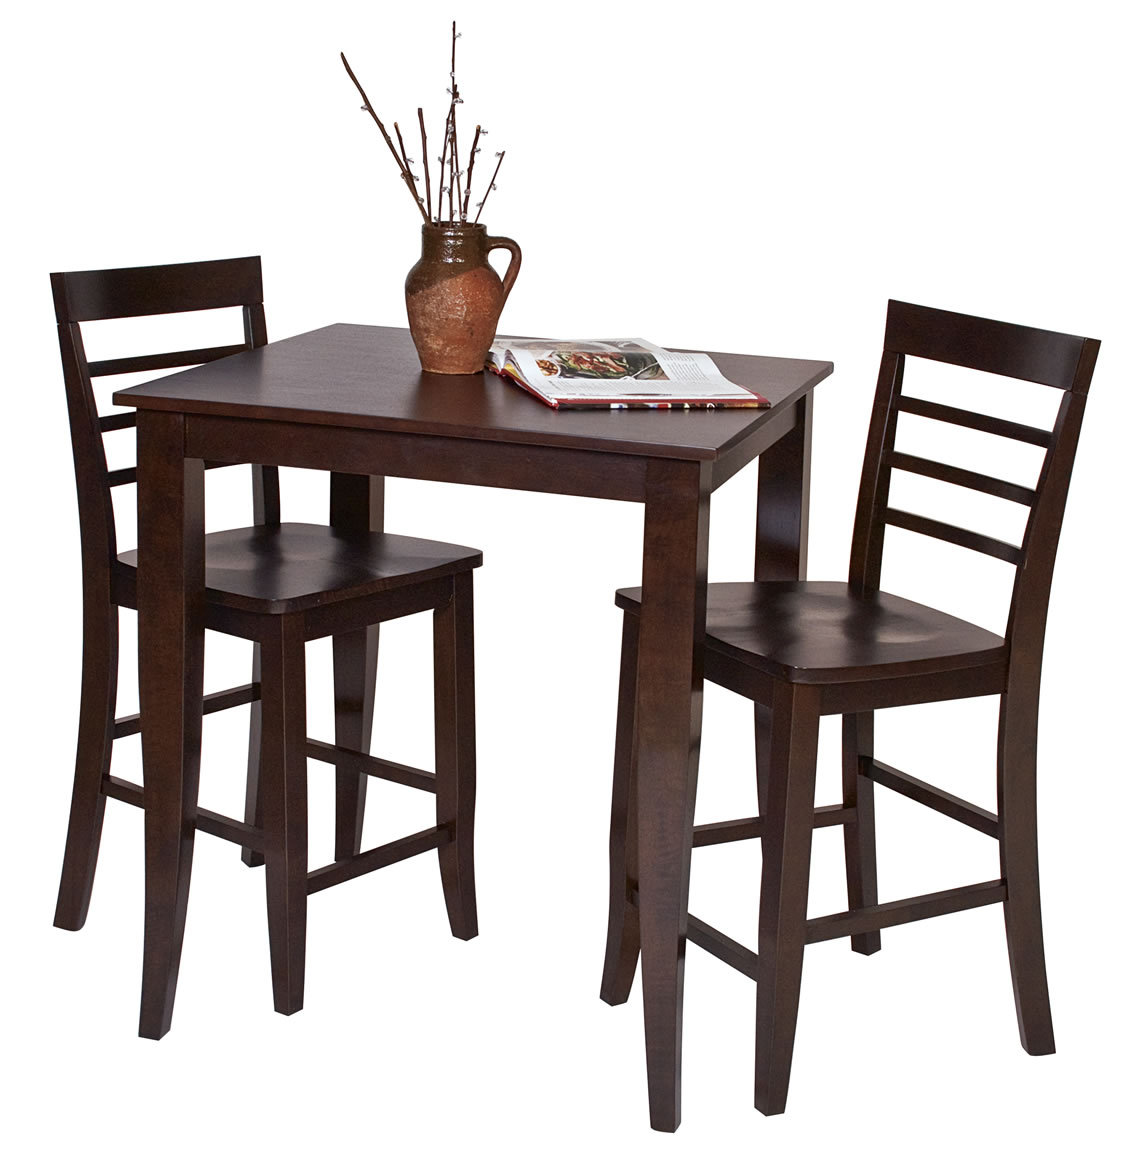 Pub Table With Chairs 3 Pc Set Espresso Wood Bar Bistro Square Pub Table And 2 Pub